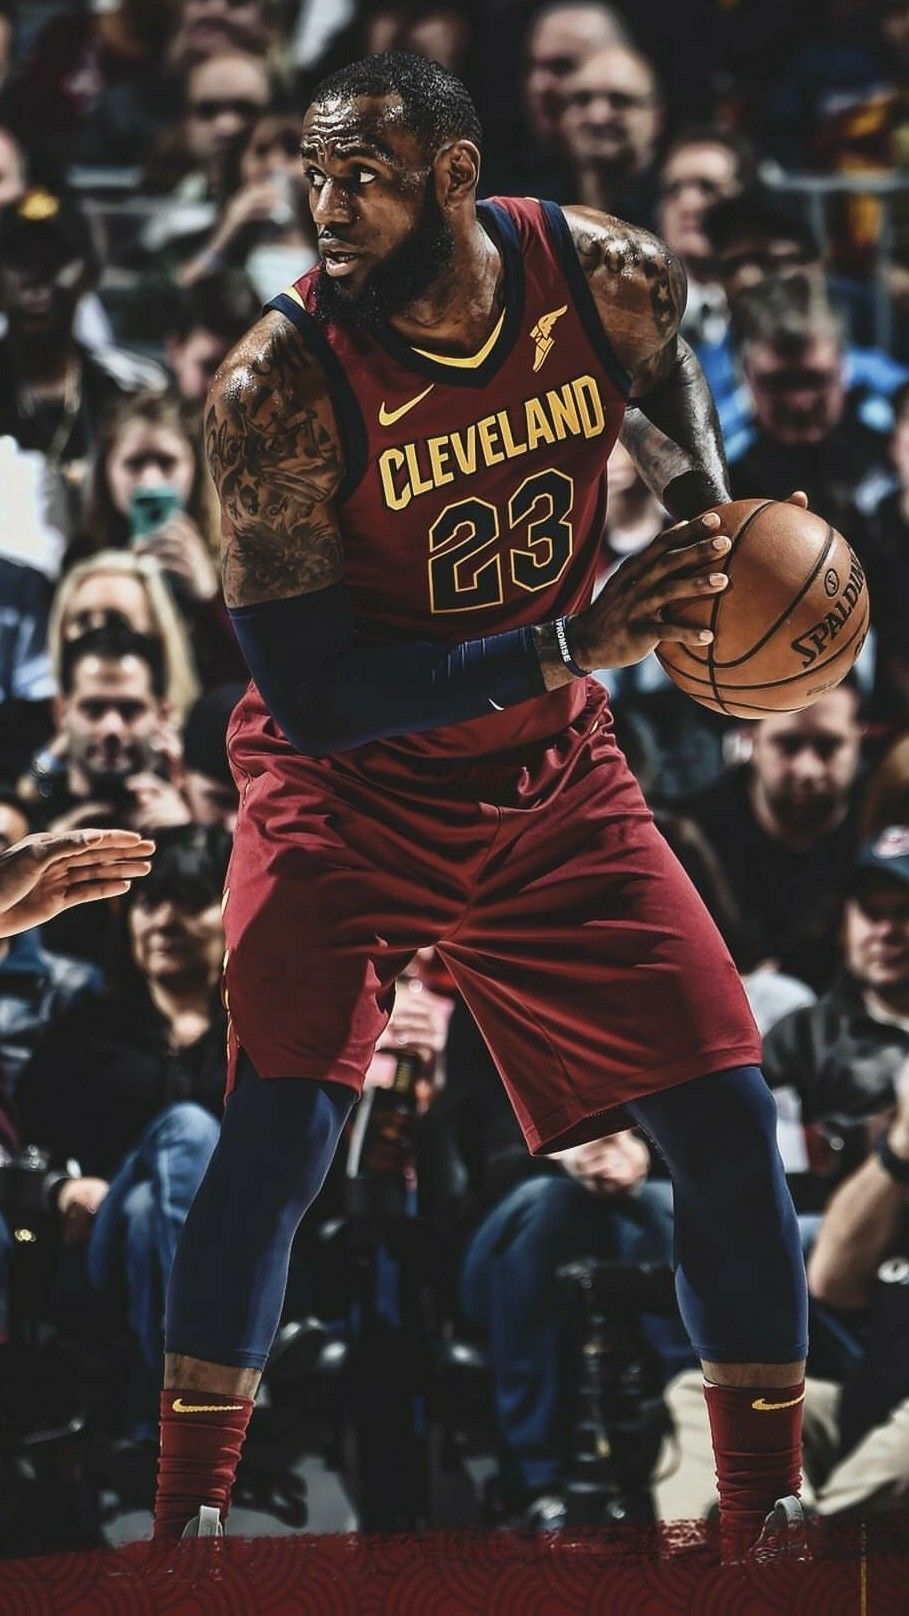 Lebron James Wallpaper Lebron James Wallpapers Lebron James Cavaliers Lebron James Cavs